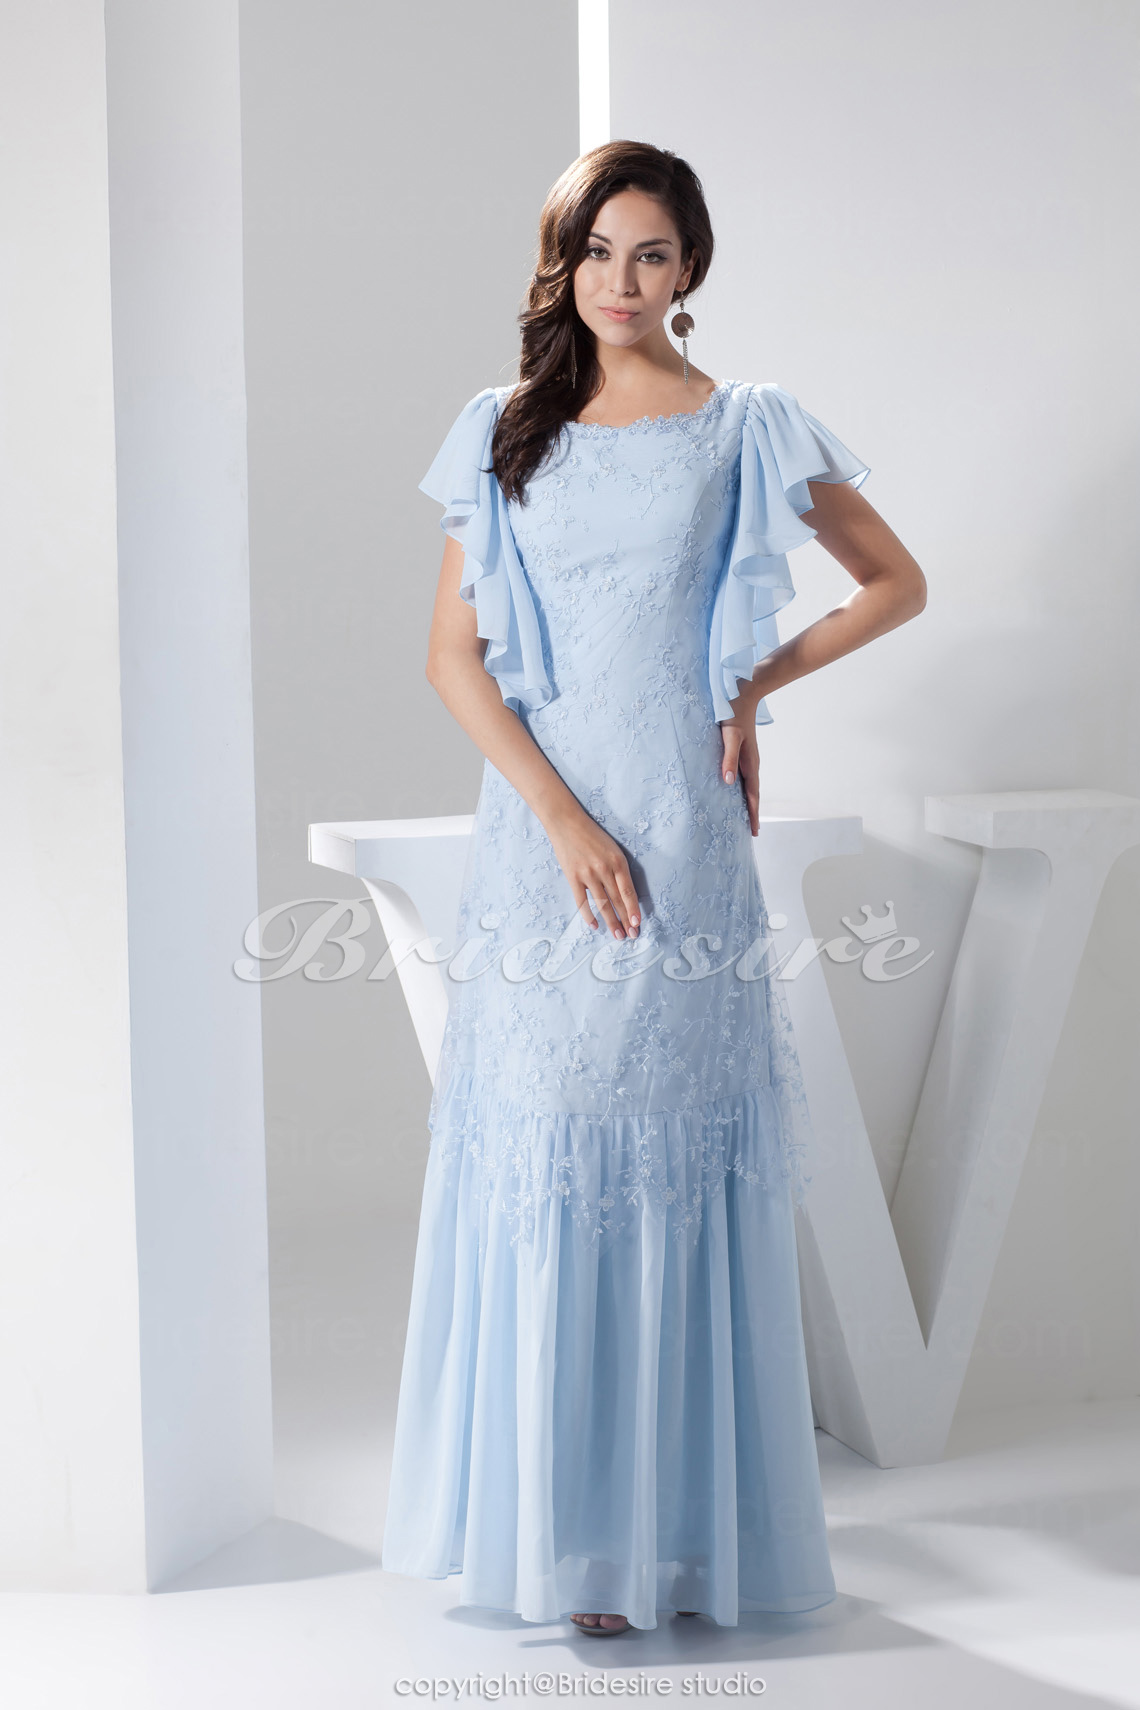 A-line Scoop Floor-length Short Sleeve Chiffon Dress